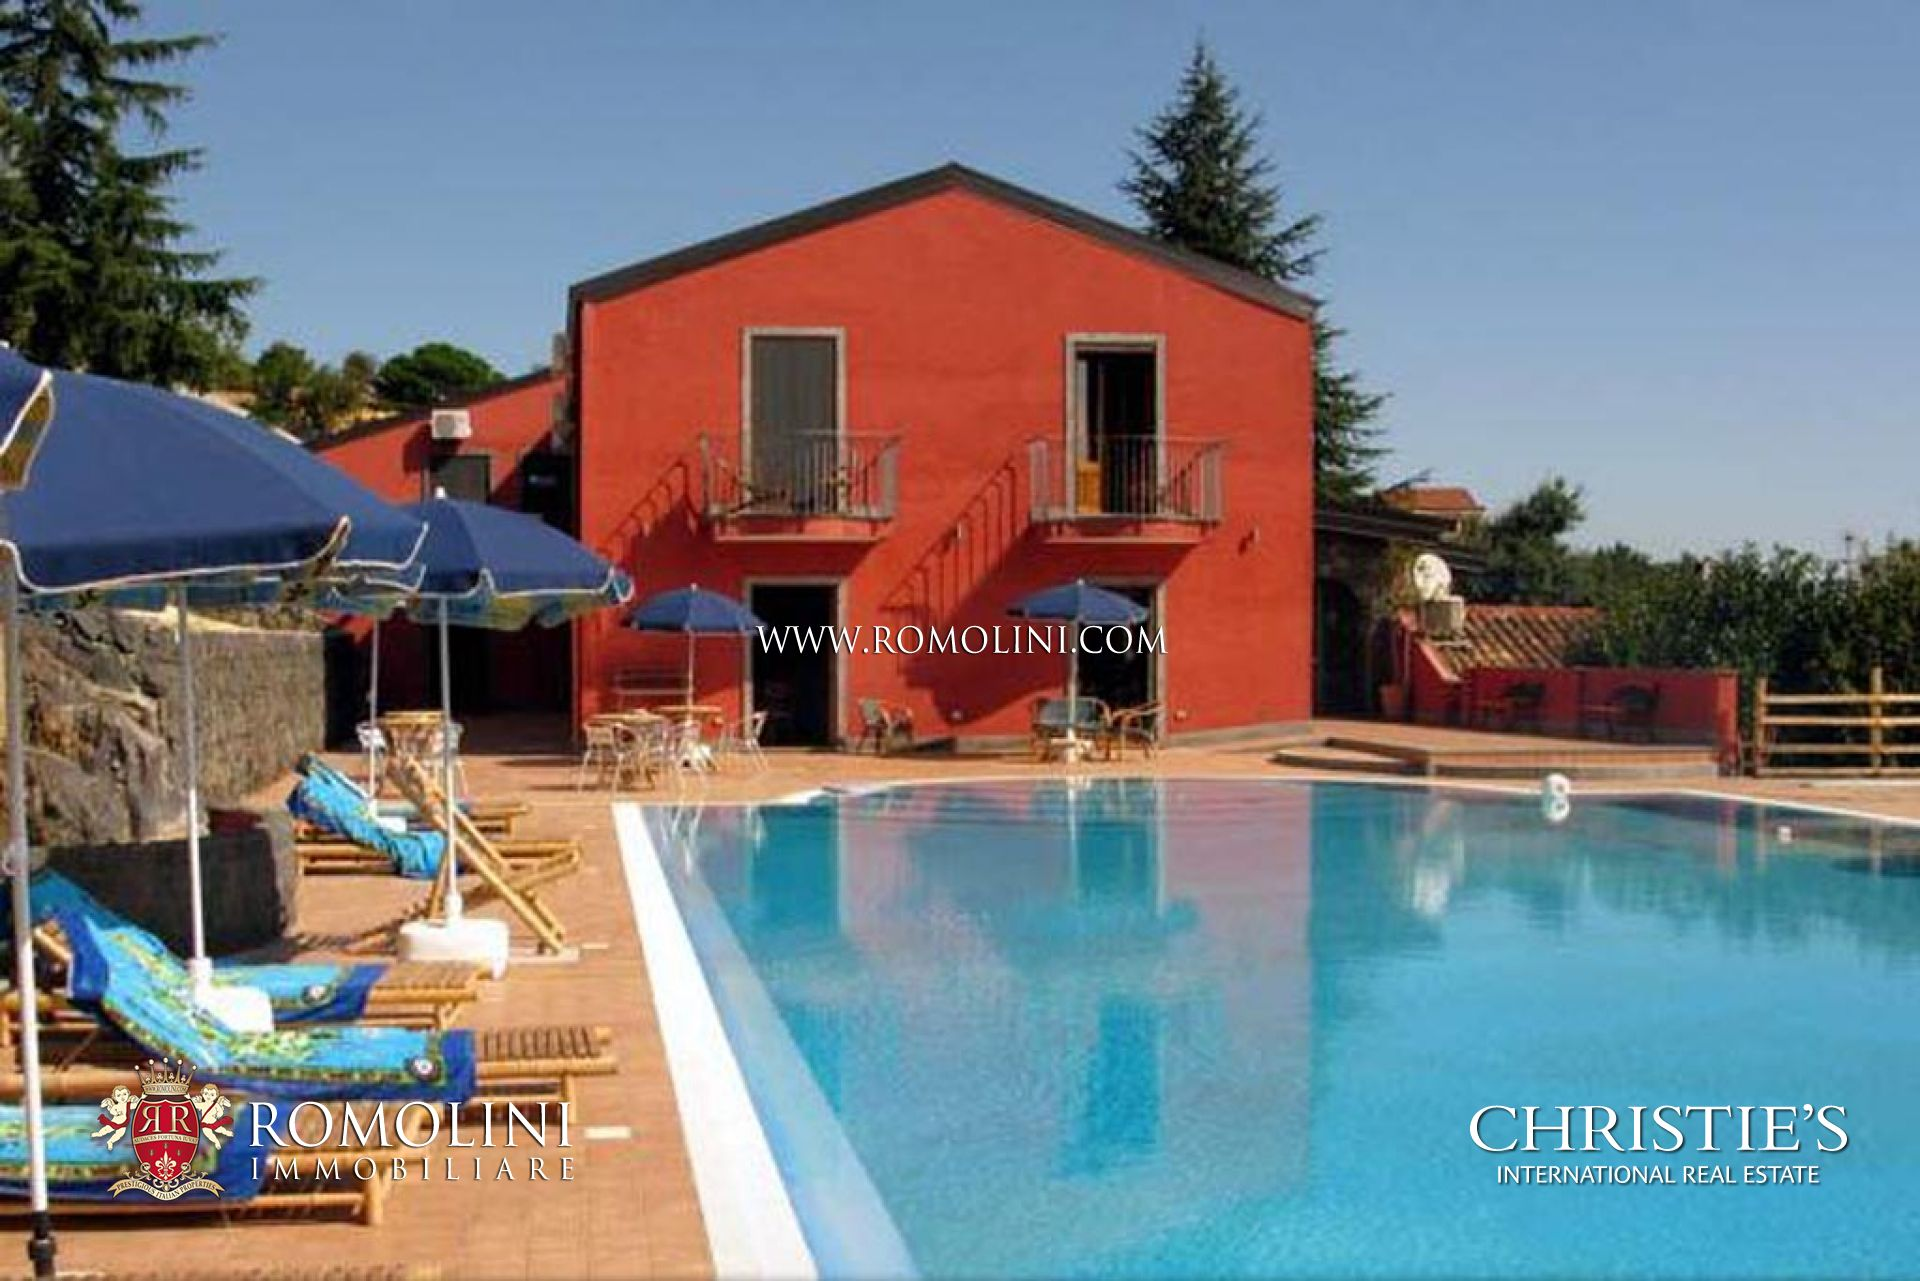 FARM WITH AGRITURISMO FOR SALE IN SICILY, Mount Etna Regional Park